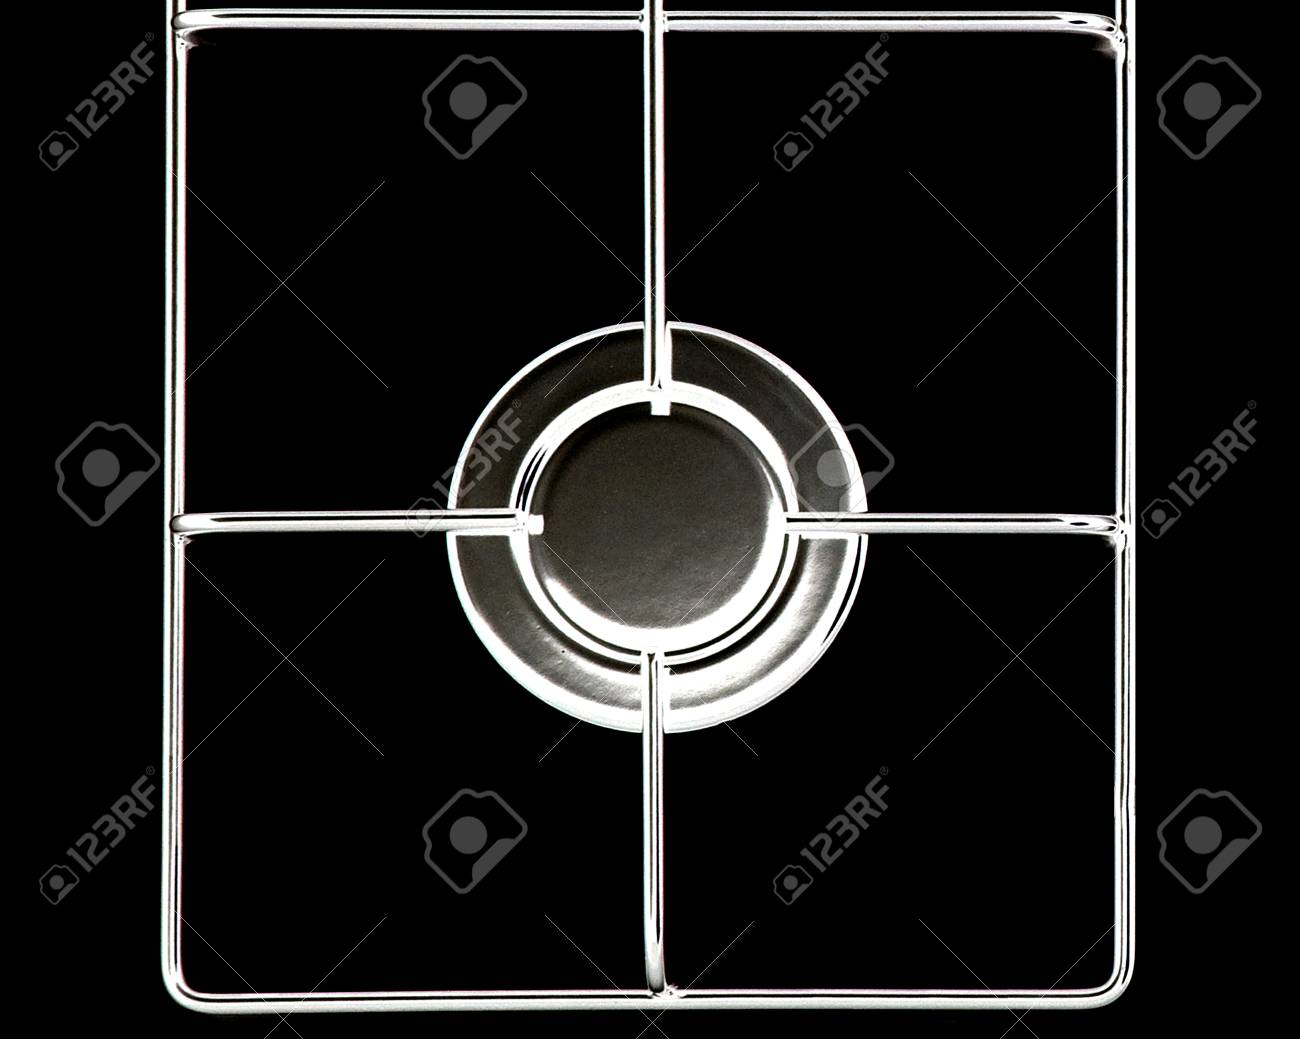 Stainless steel gas hob or stove. Stock Photo - 15787116